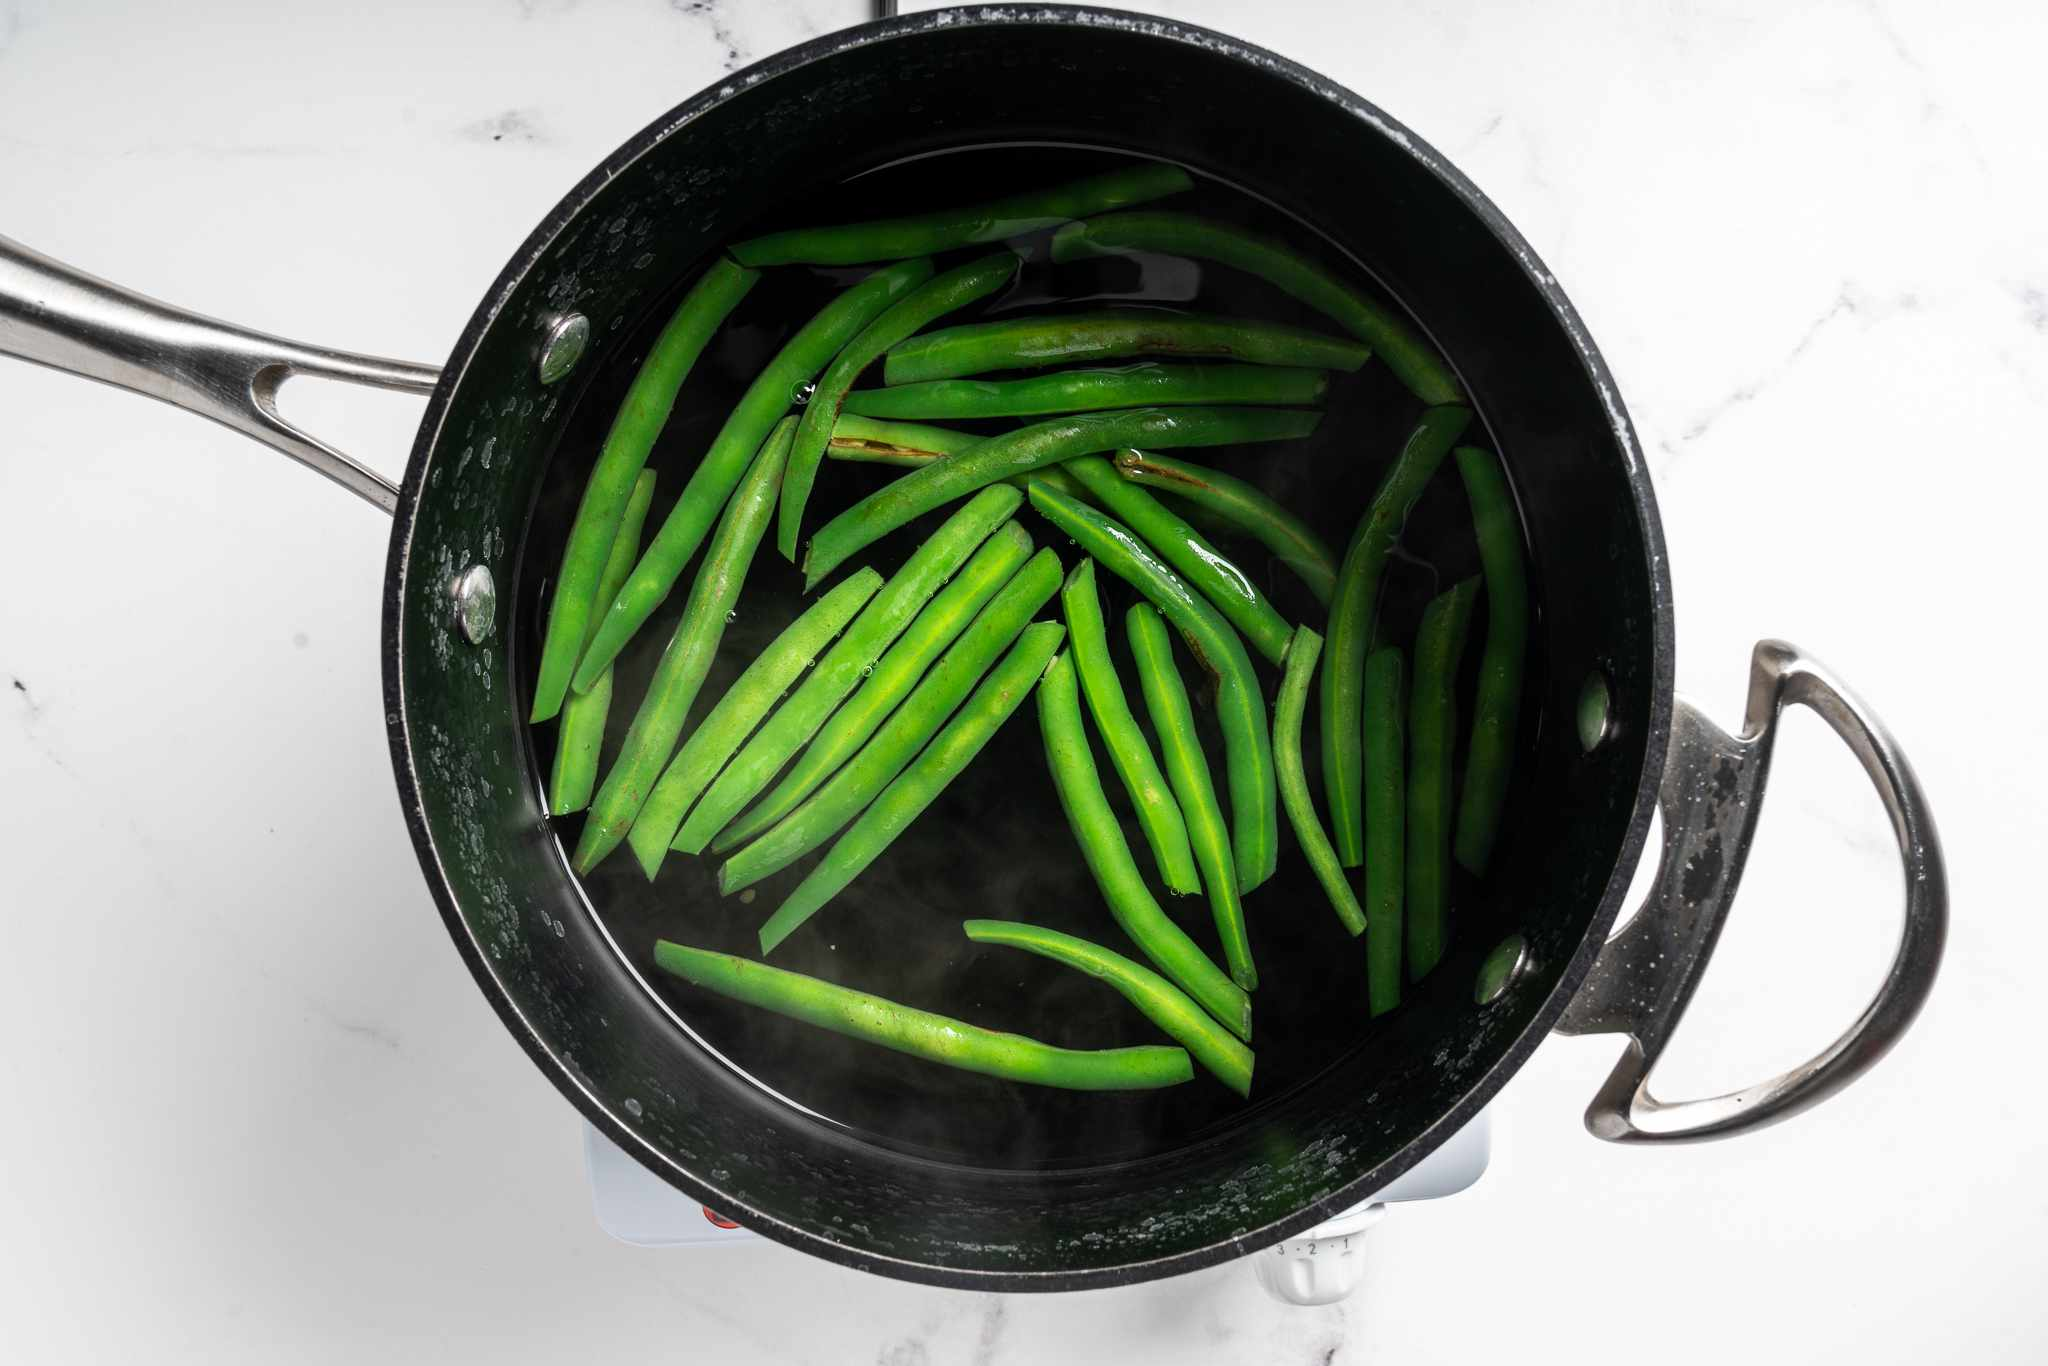 green beans in a pot with water